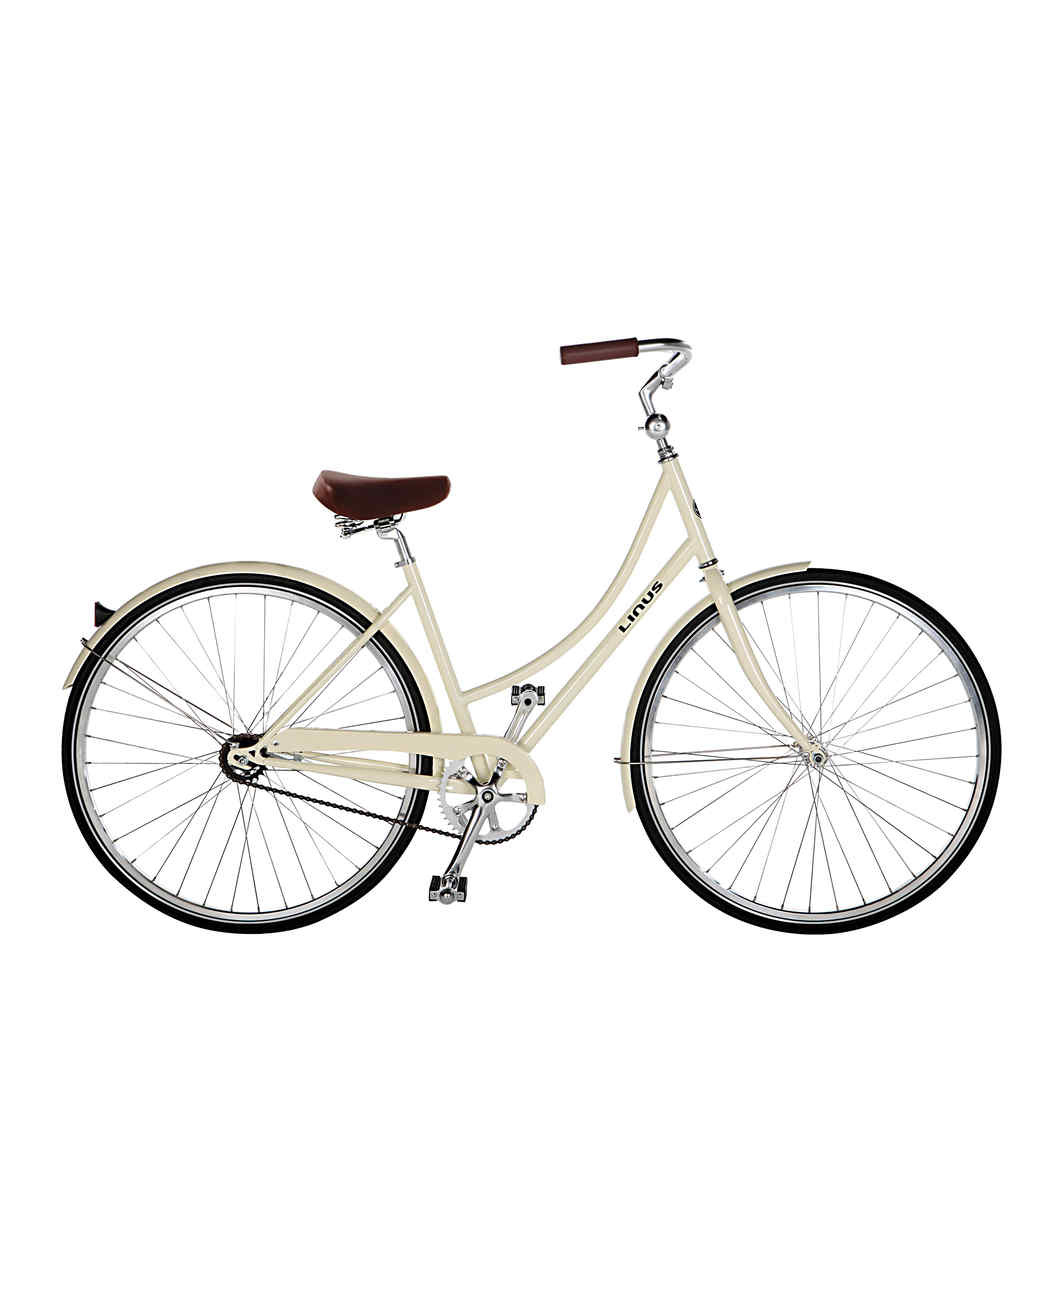 bicycle-dutchi1-creamms111044.jpg